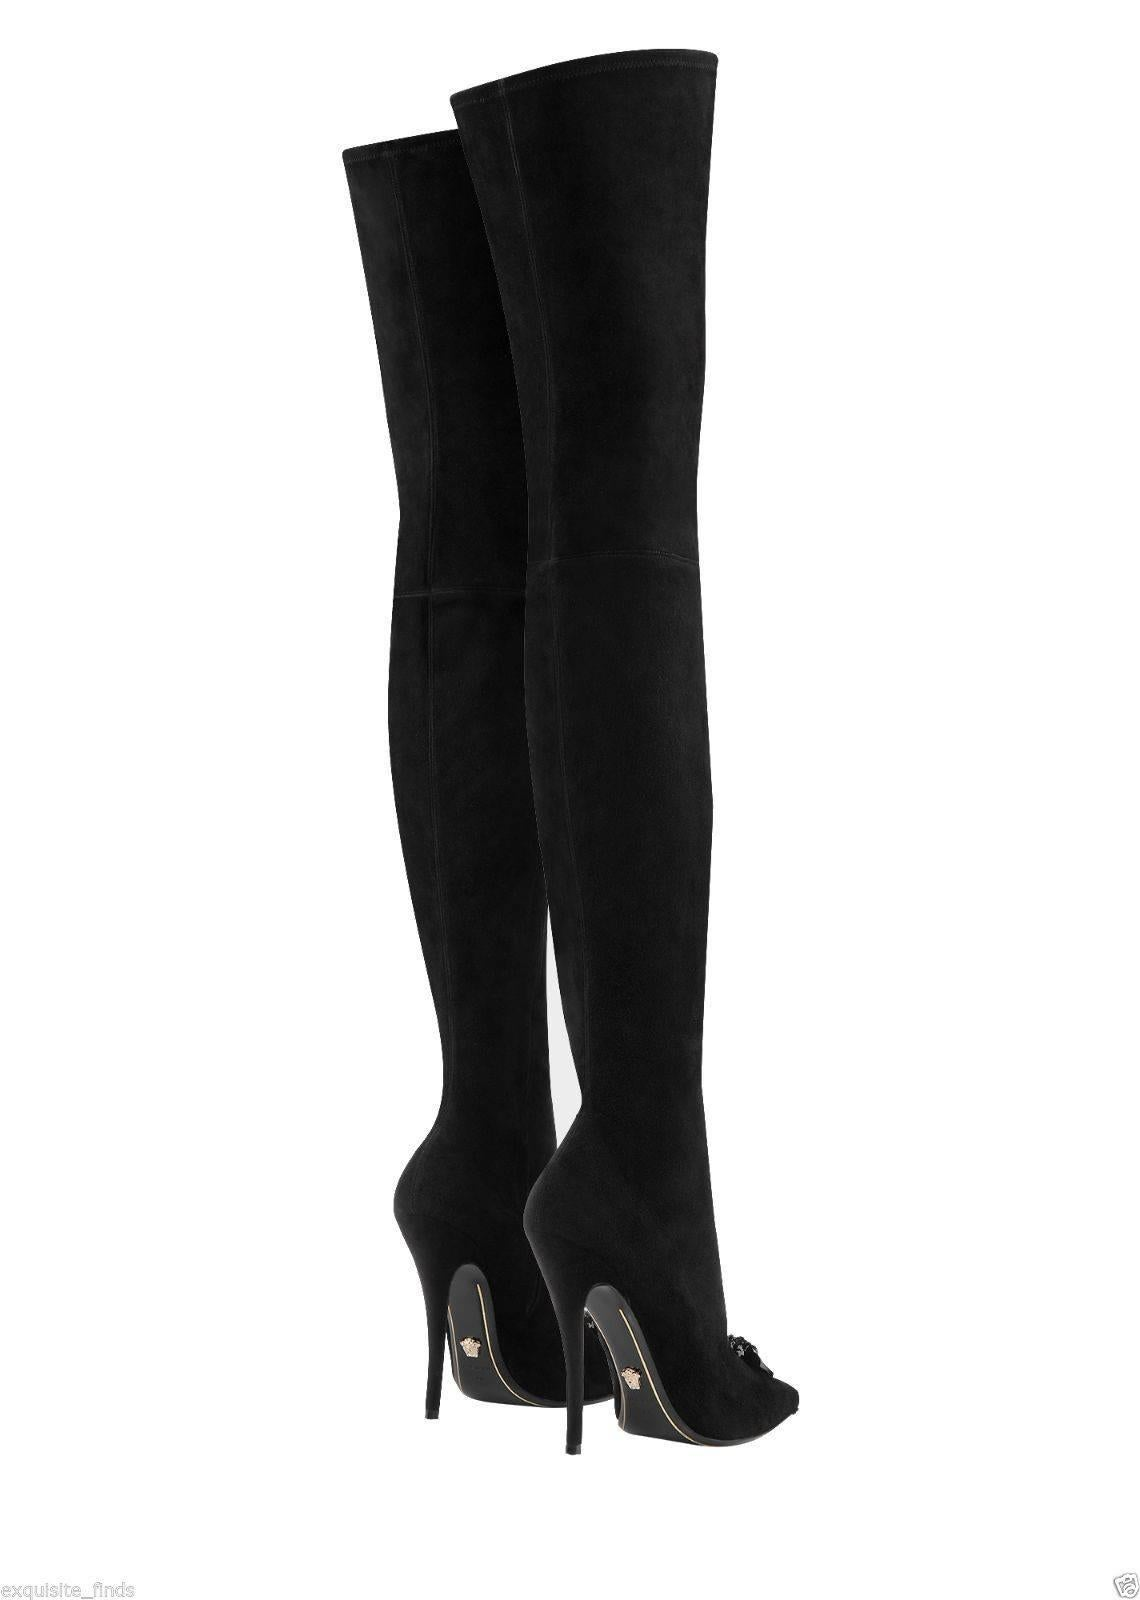 2f710fe5 Versace Palazzo Thigh High Black Suede Stiletto Boots